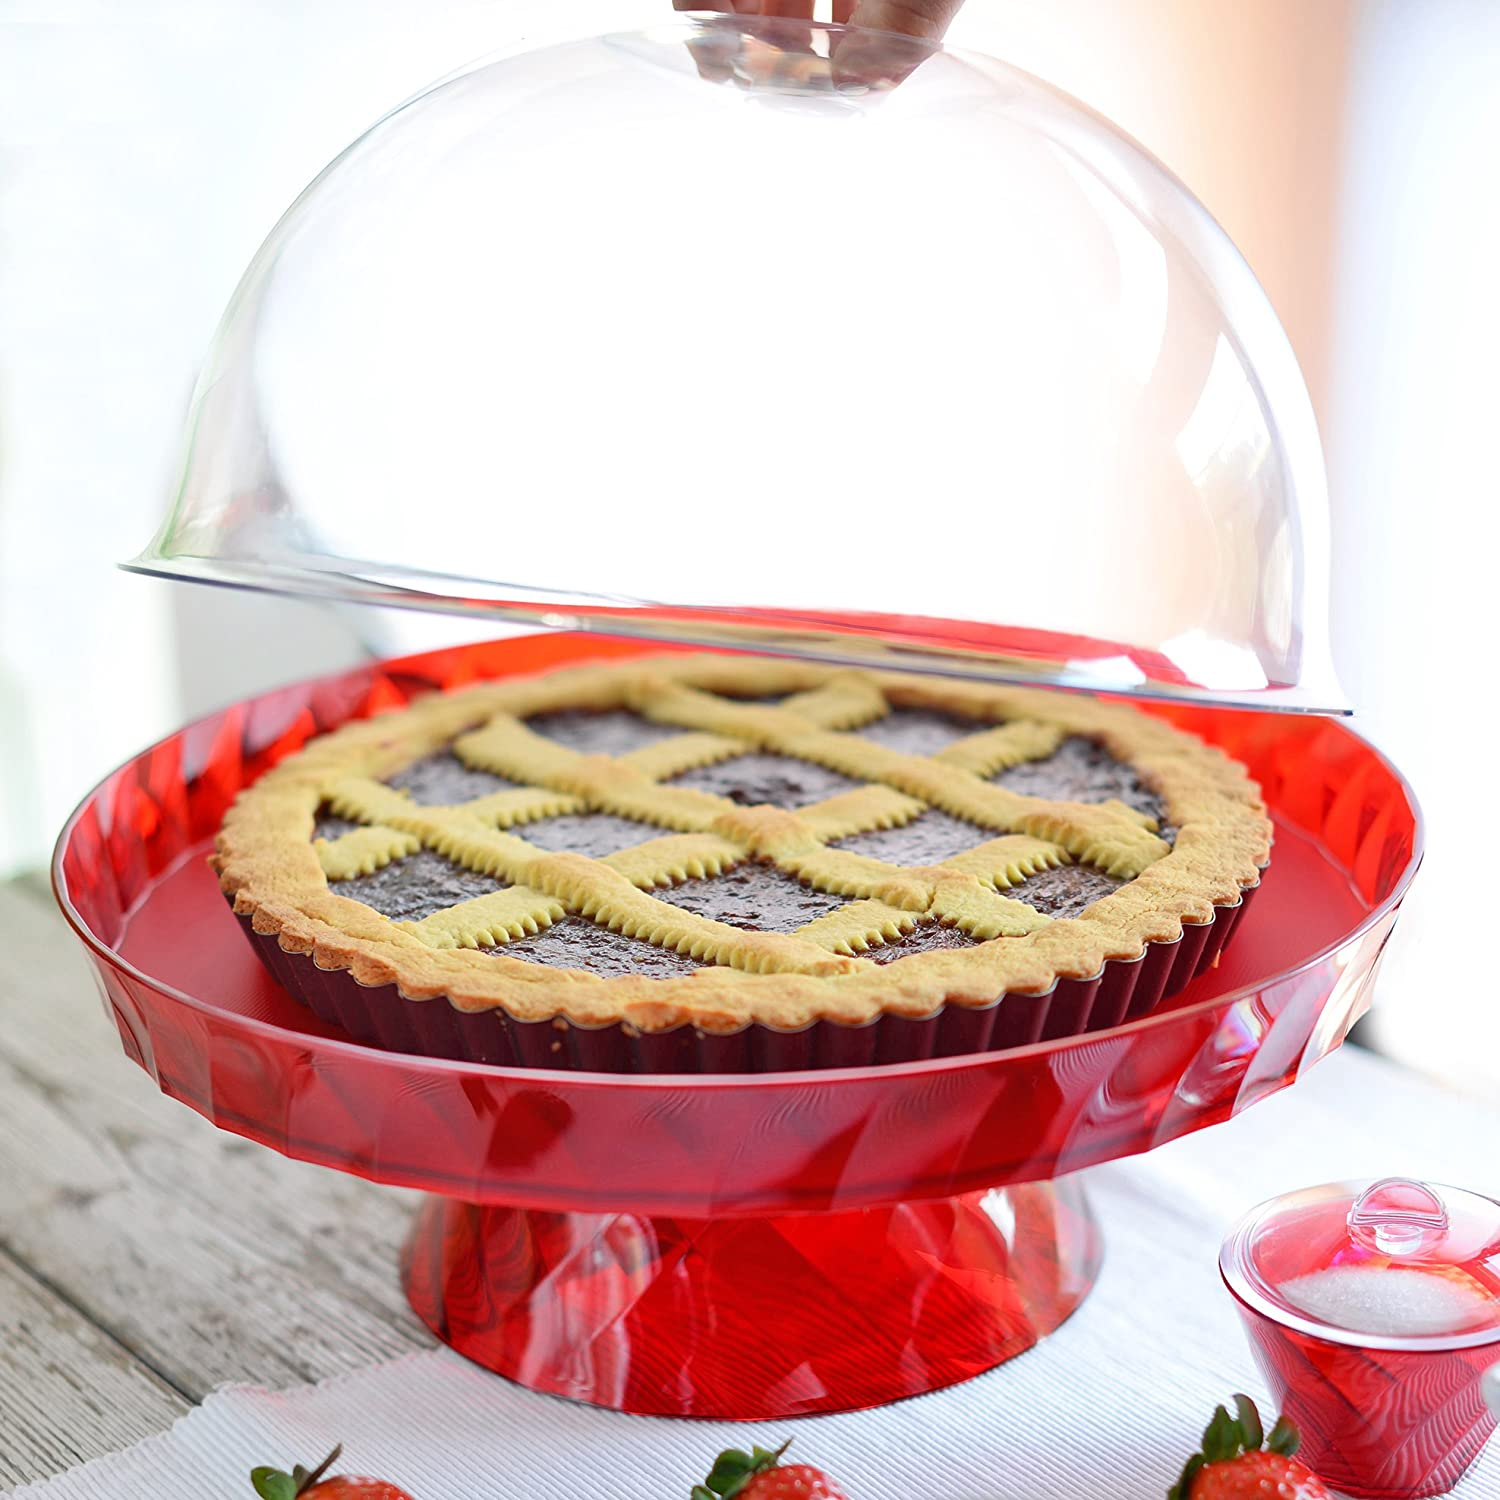 Domed Break-Resistant Cake Stand Footed Serving Display,Diamond line by omadadesign Clear Adamo srl M5322TR